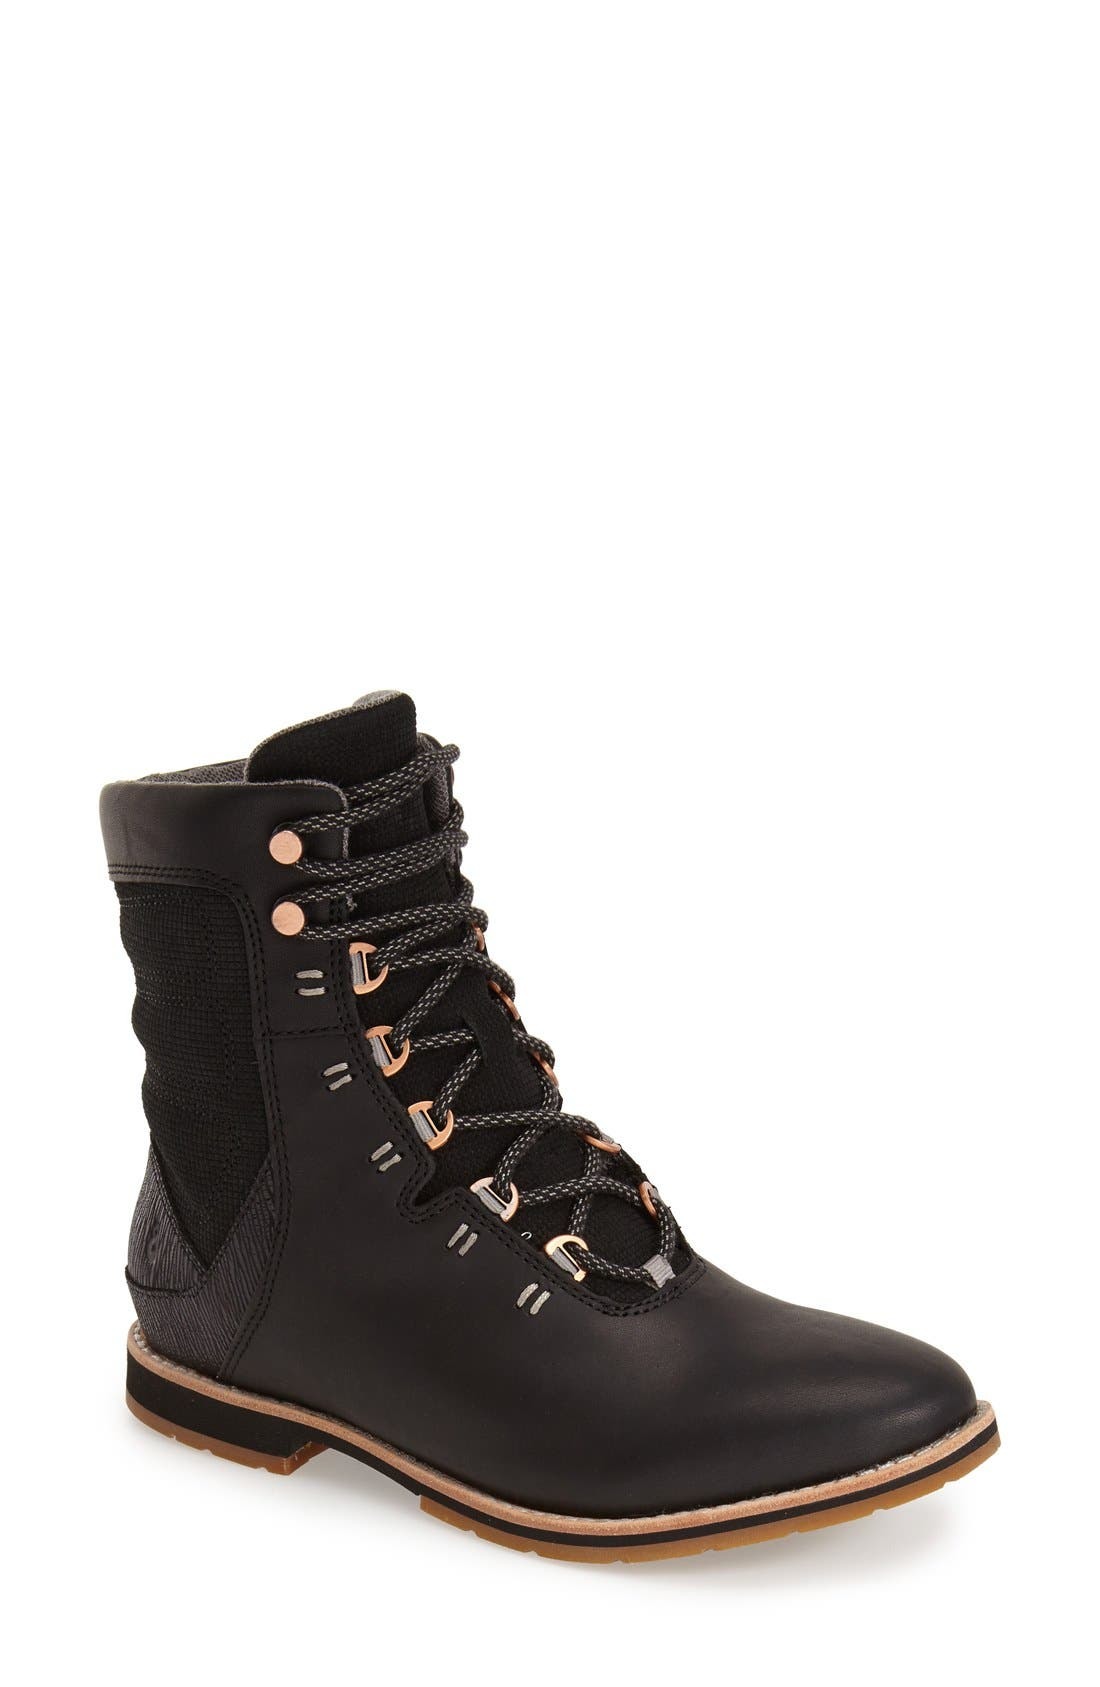 Alternate Image 1 Selected - Ahnu 'Chenery' Water Resistant Boot (Women)